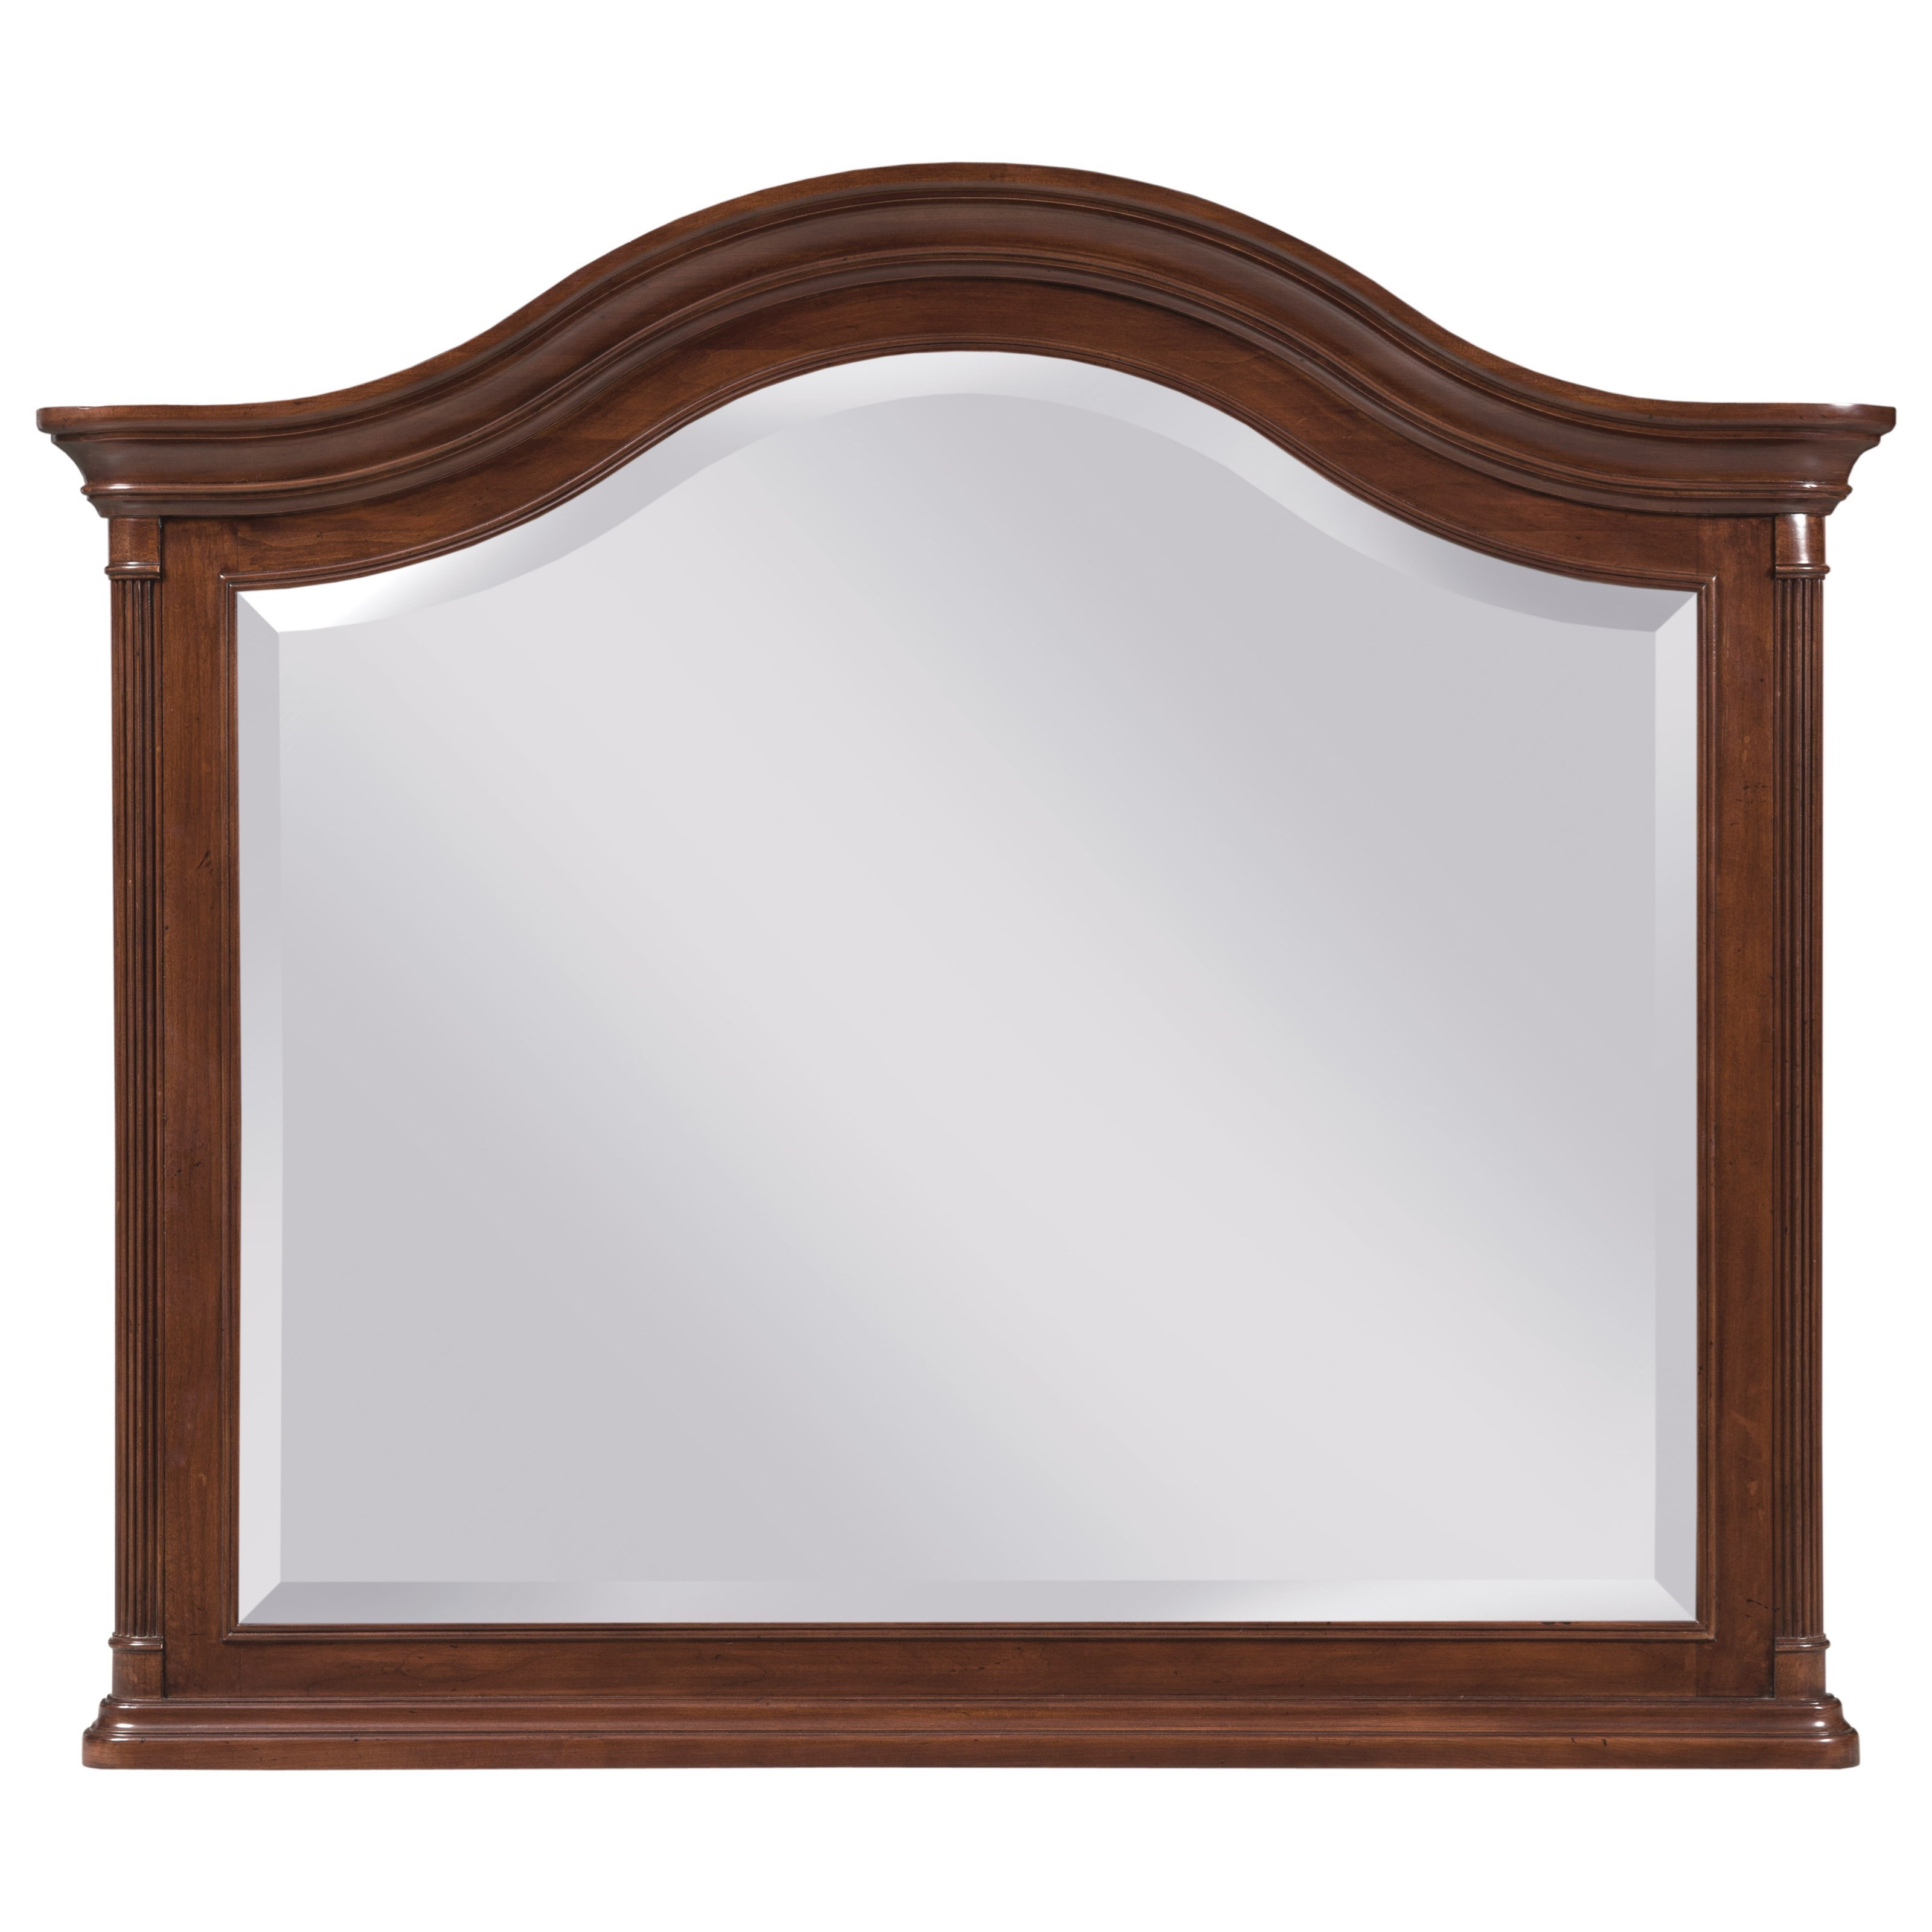 Hadleigh Arched Landscape Mirror by Kincaid Furniture at Northeast Factory Direct